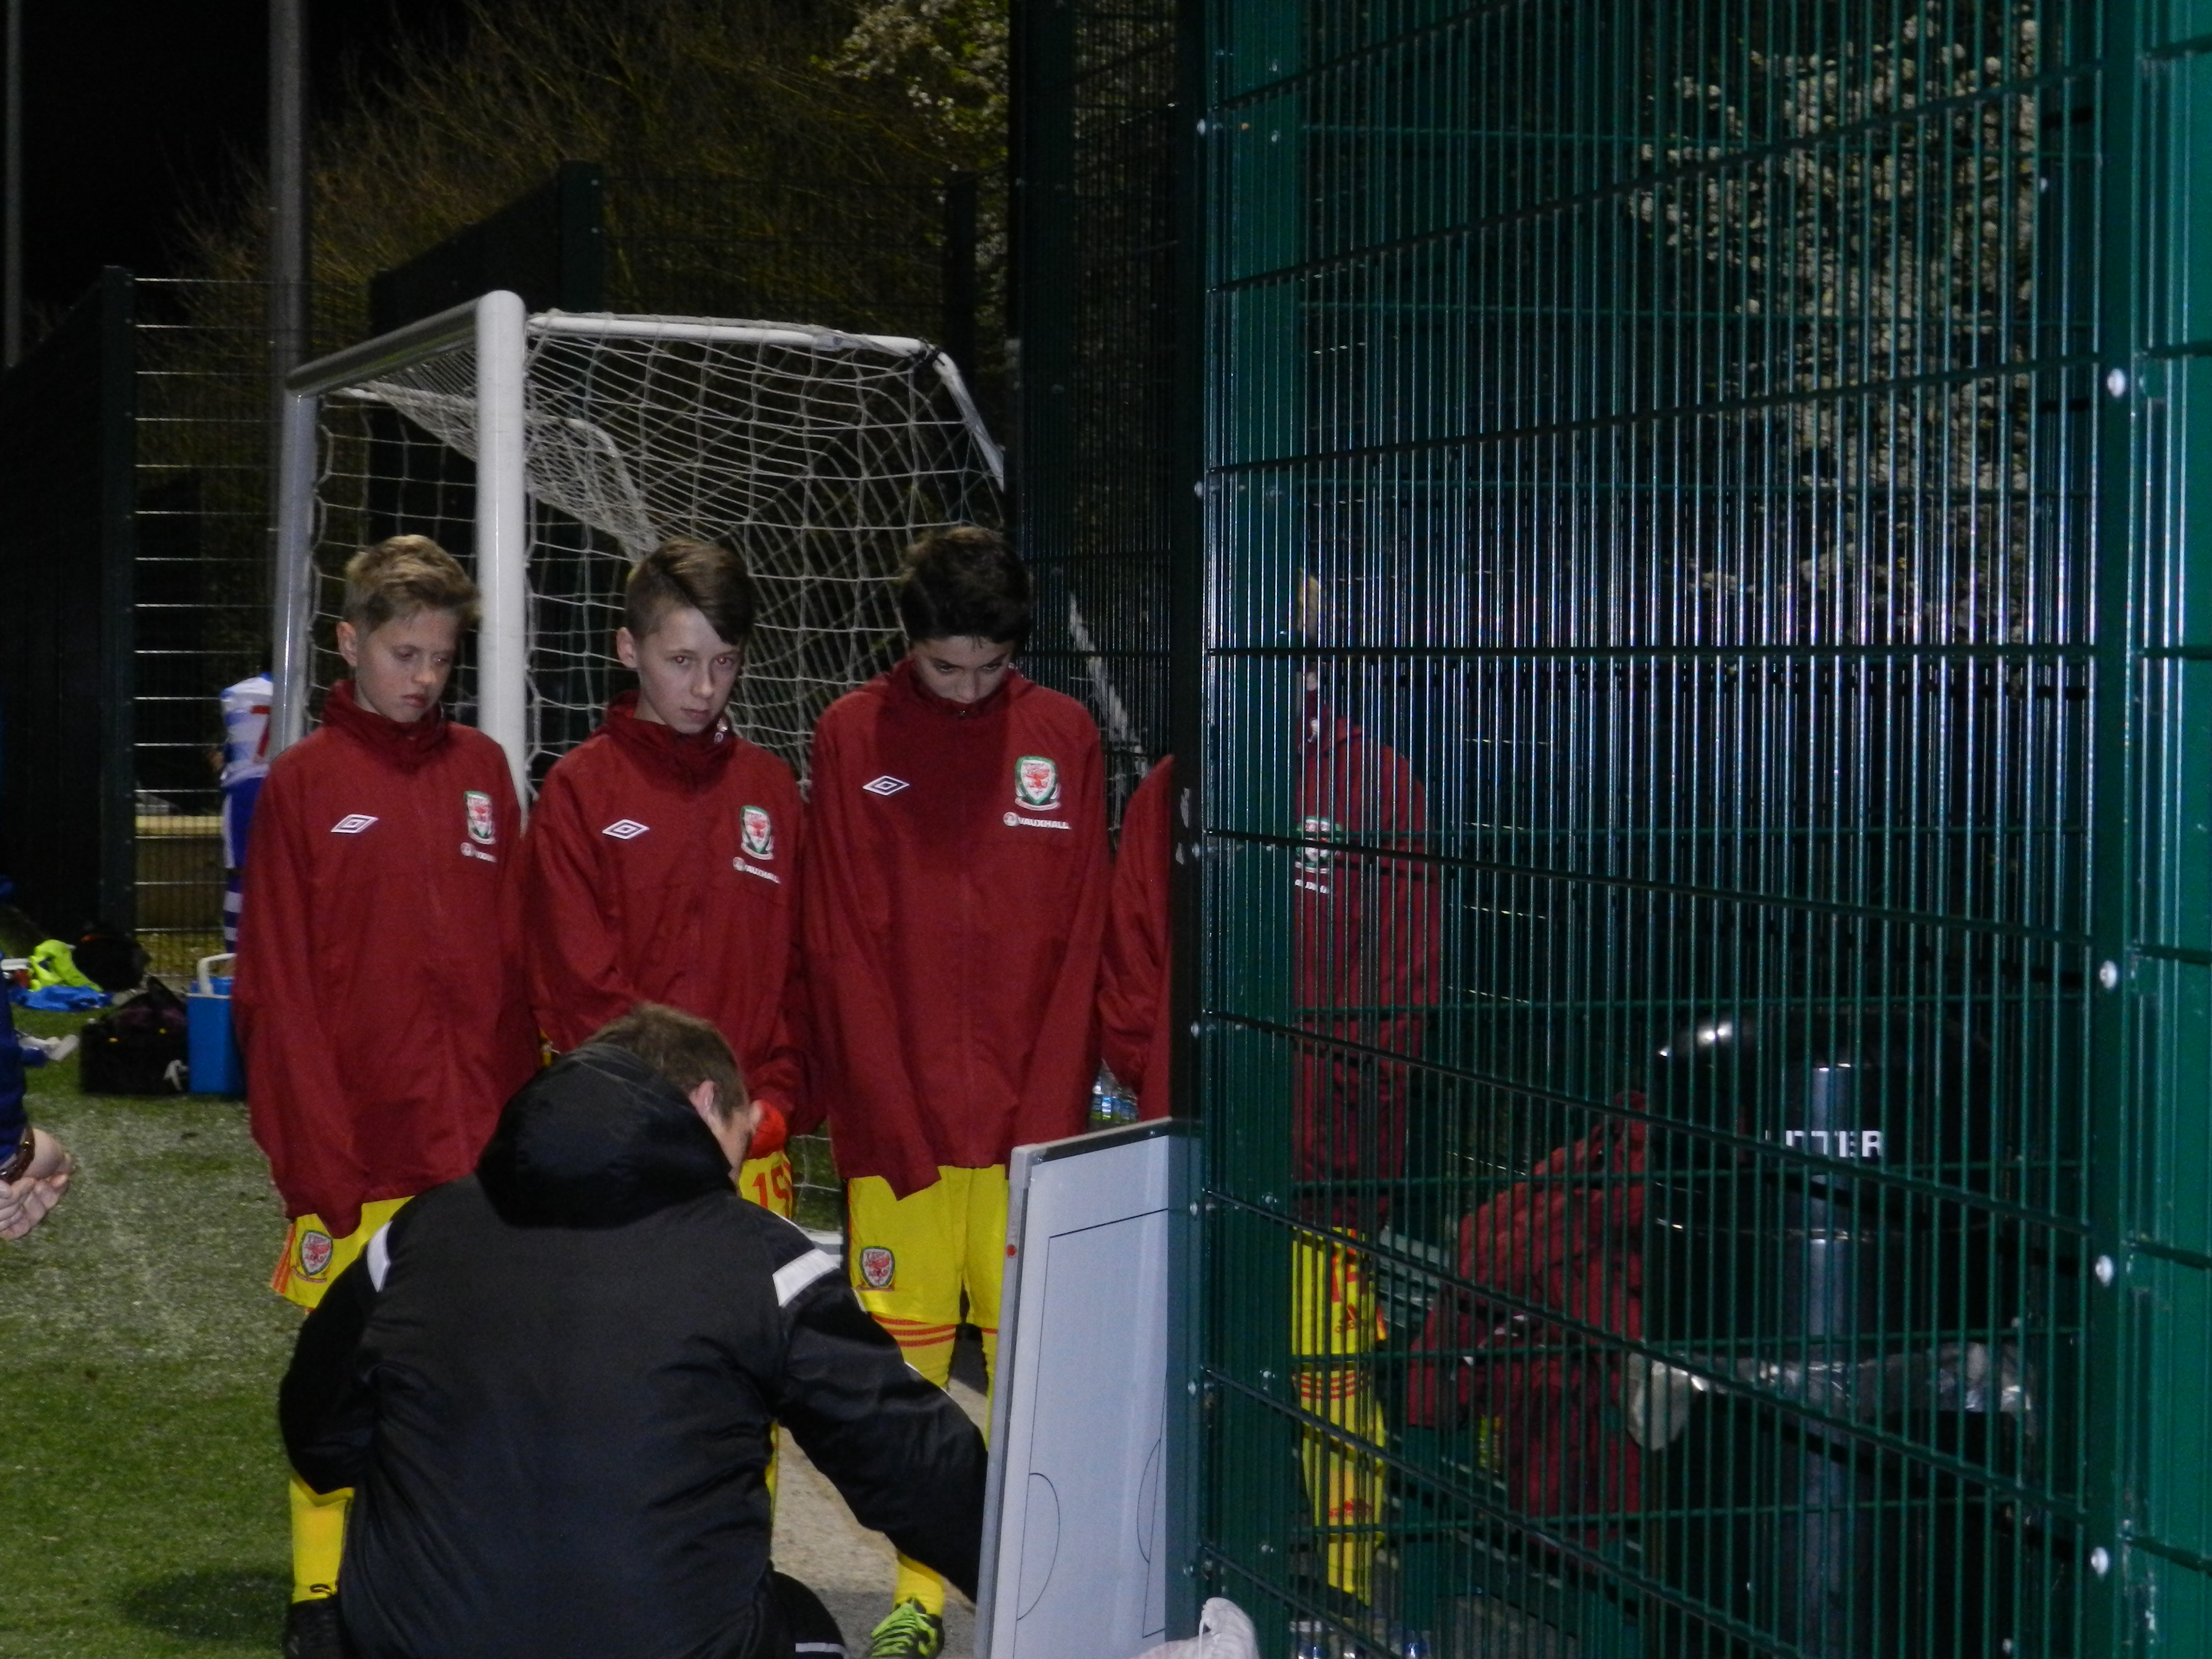 Wales U14 Boys get steep learning curve at Reading FC Academy